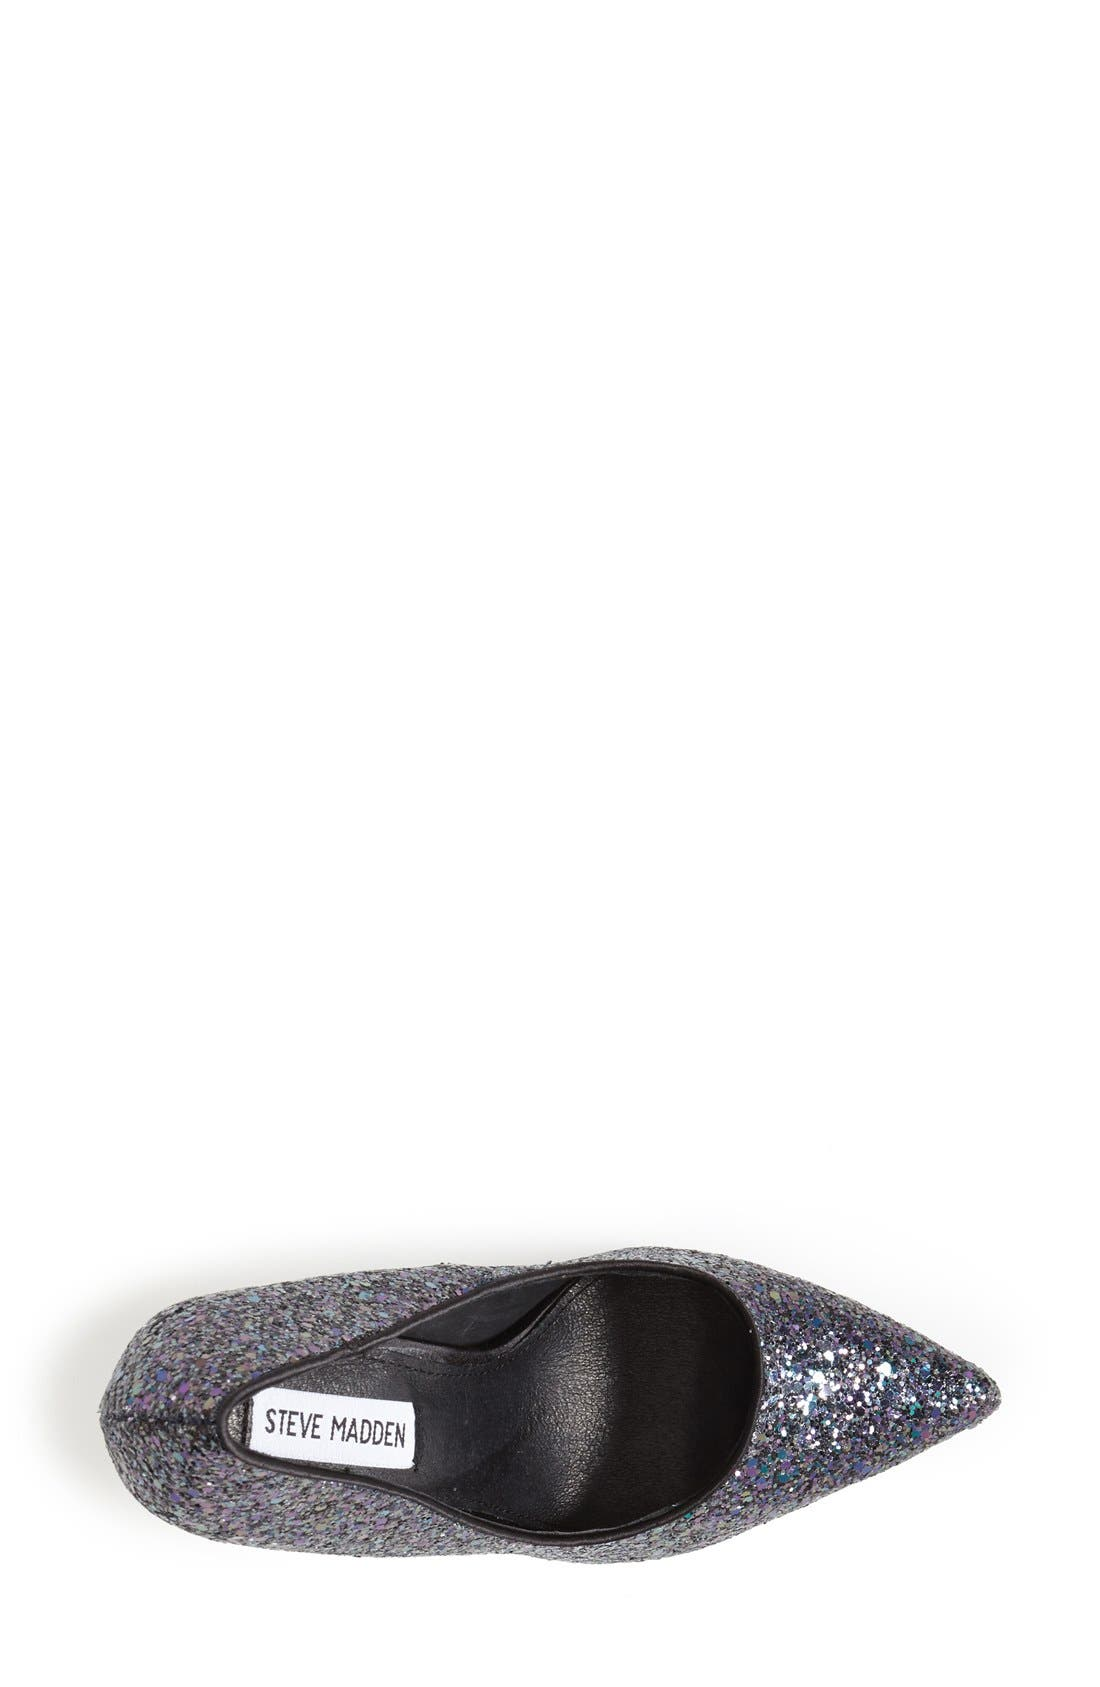 Alternate Image 3  - Steve Madden 'Atlantyc' Glitter Pump (Women)